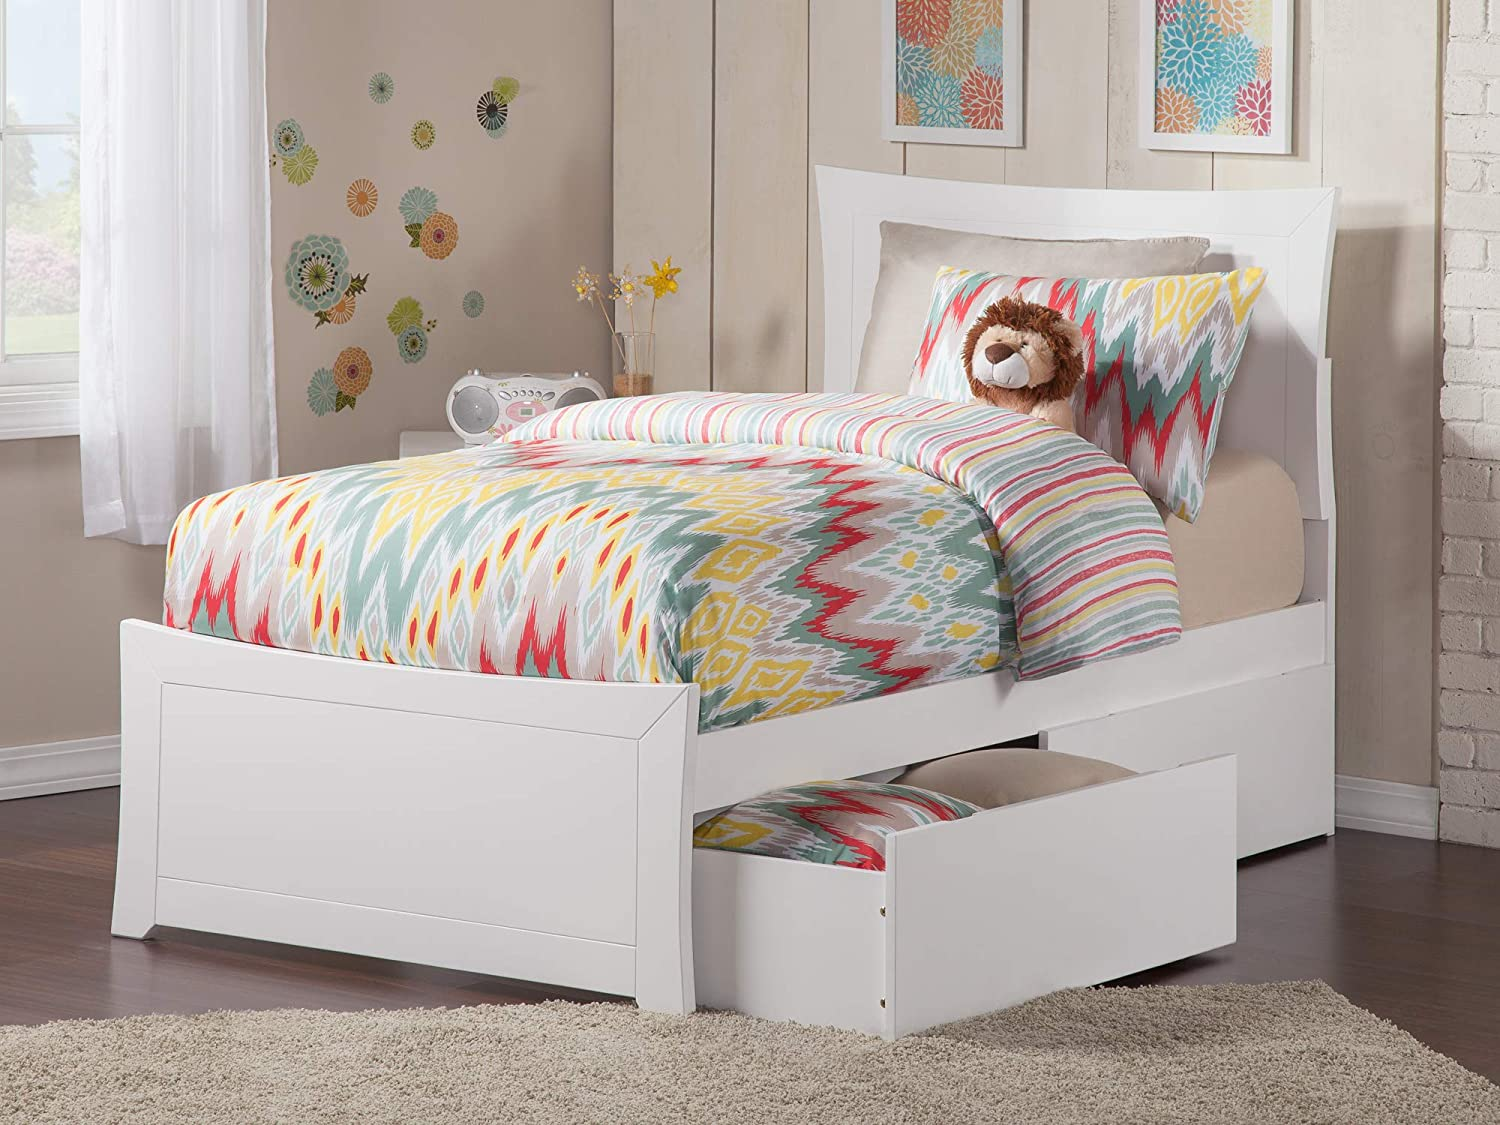 Atlantic Furniture AR9026112 Metro Platform Bed with Matching Foot Board and 2 Urban Bed Drawers, Twin, White